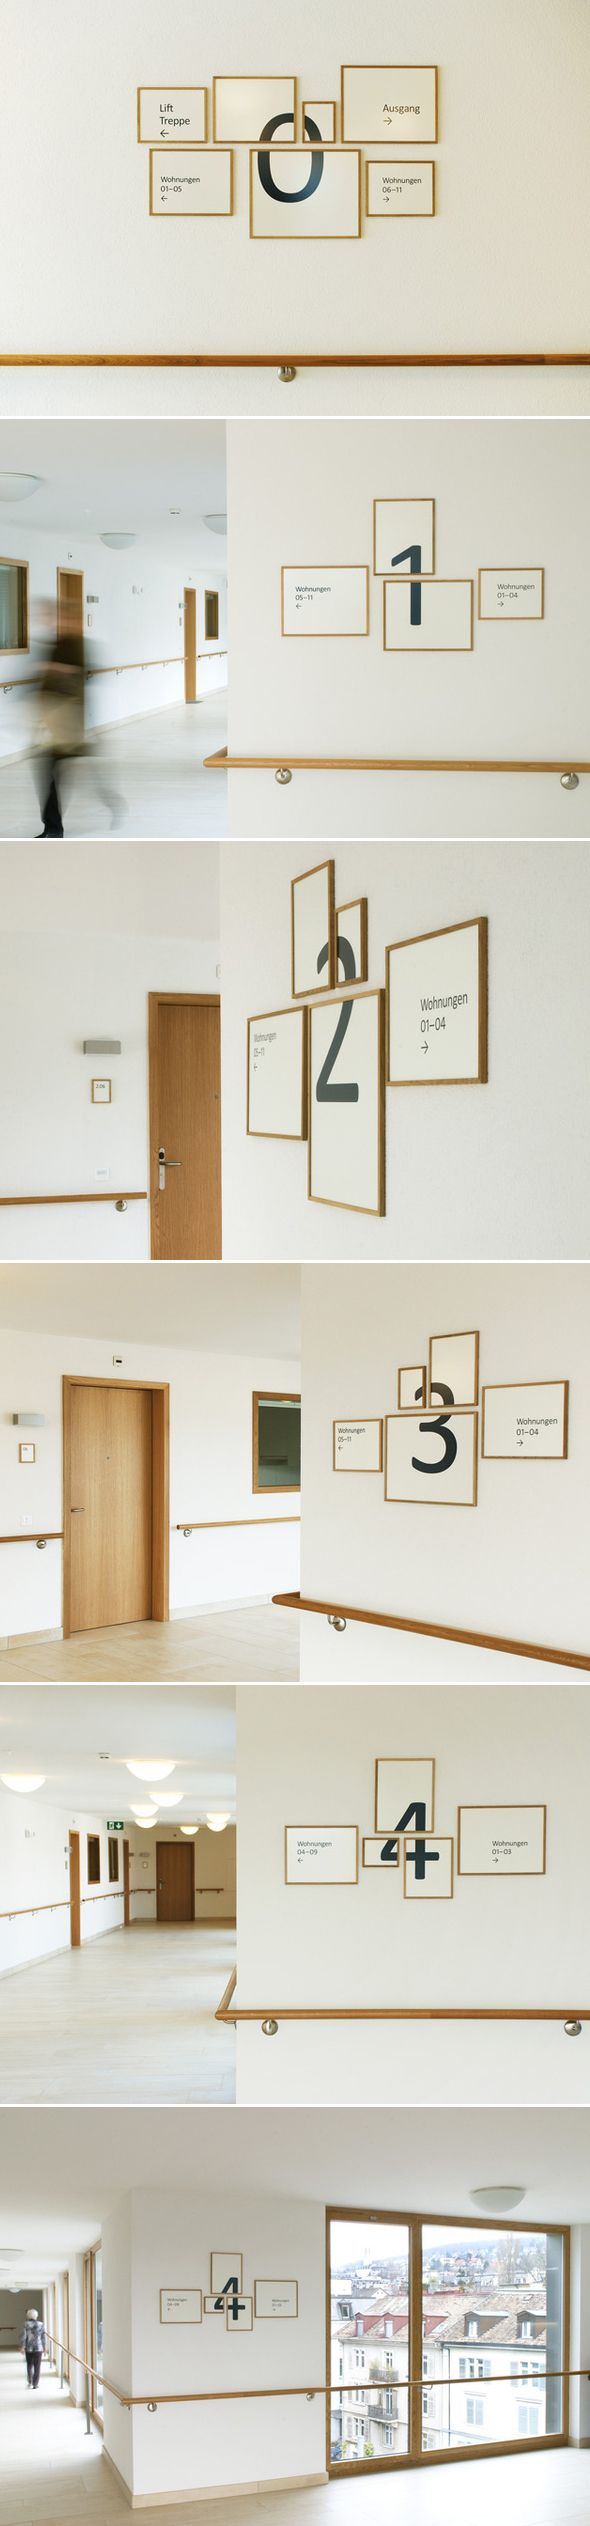 Assemblage De Cadres Photos awesome signage design | design de signalisation, design et